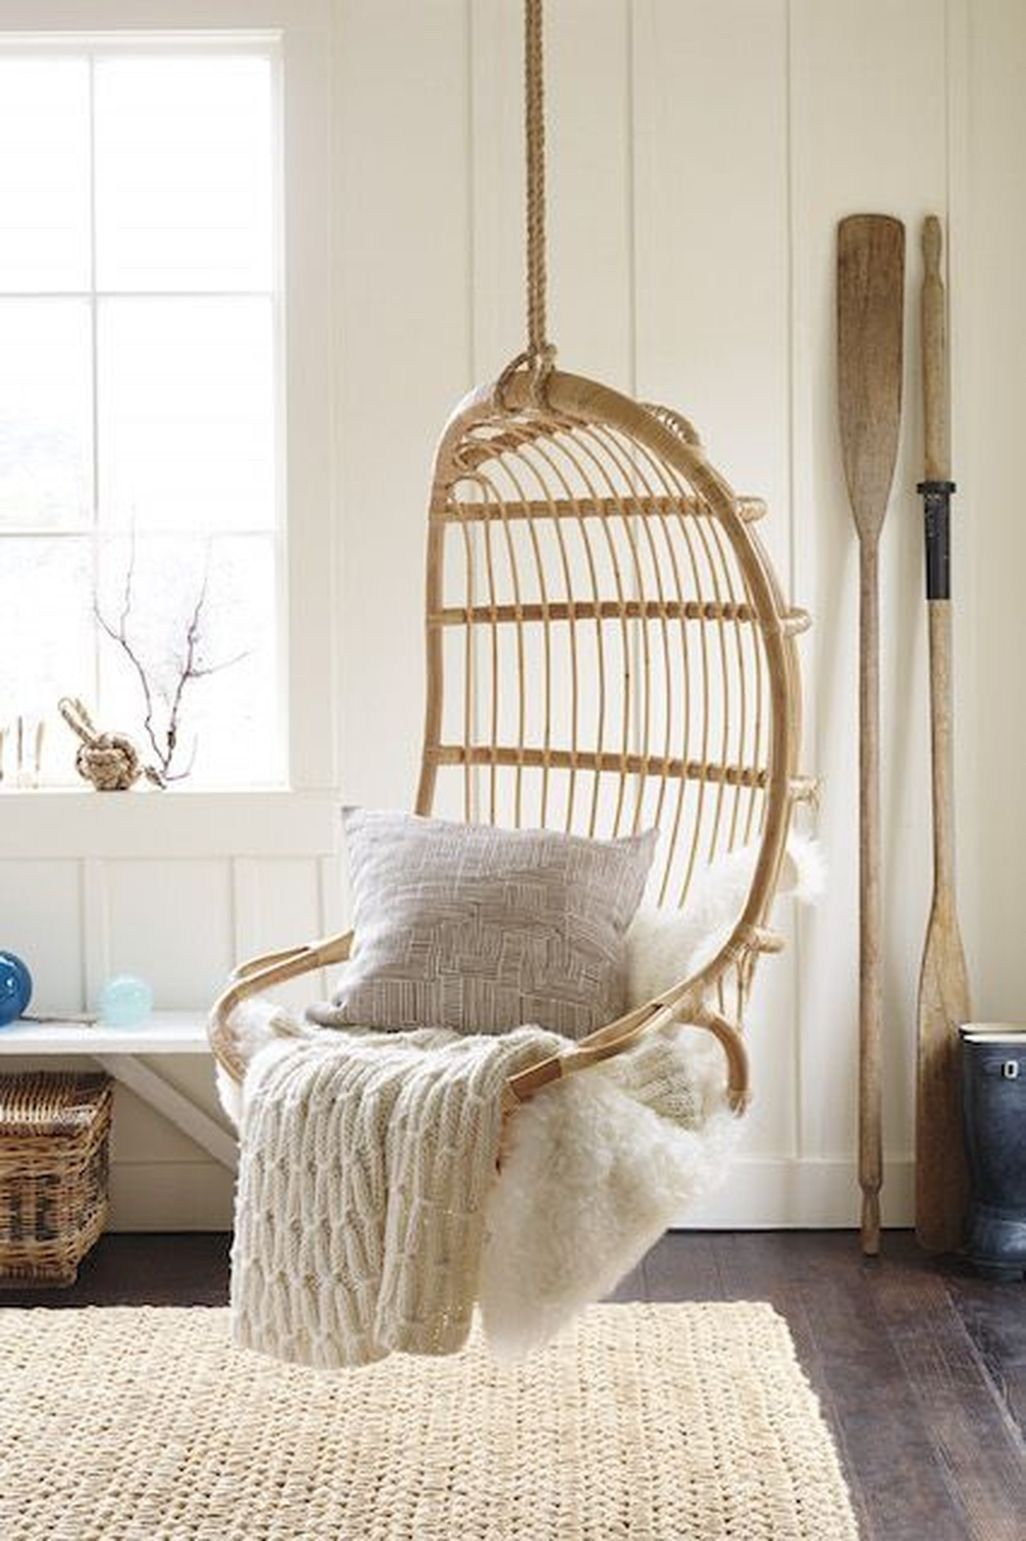 Hanging Swing Chair Stand Indoor Decor